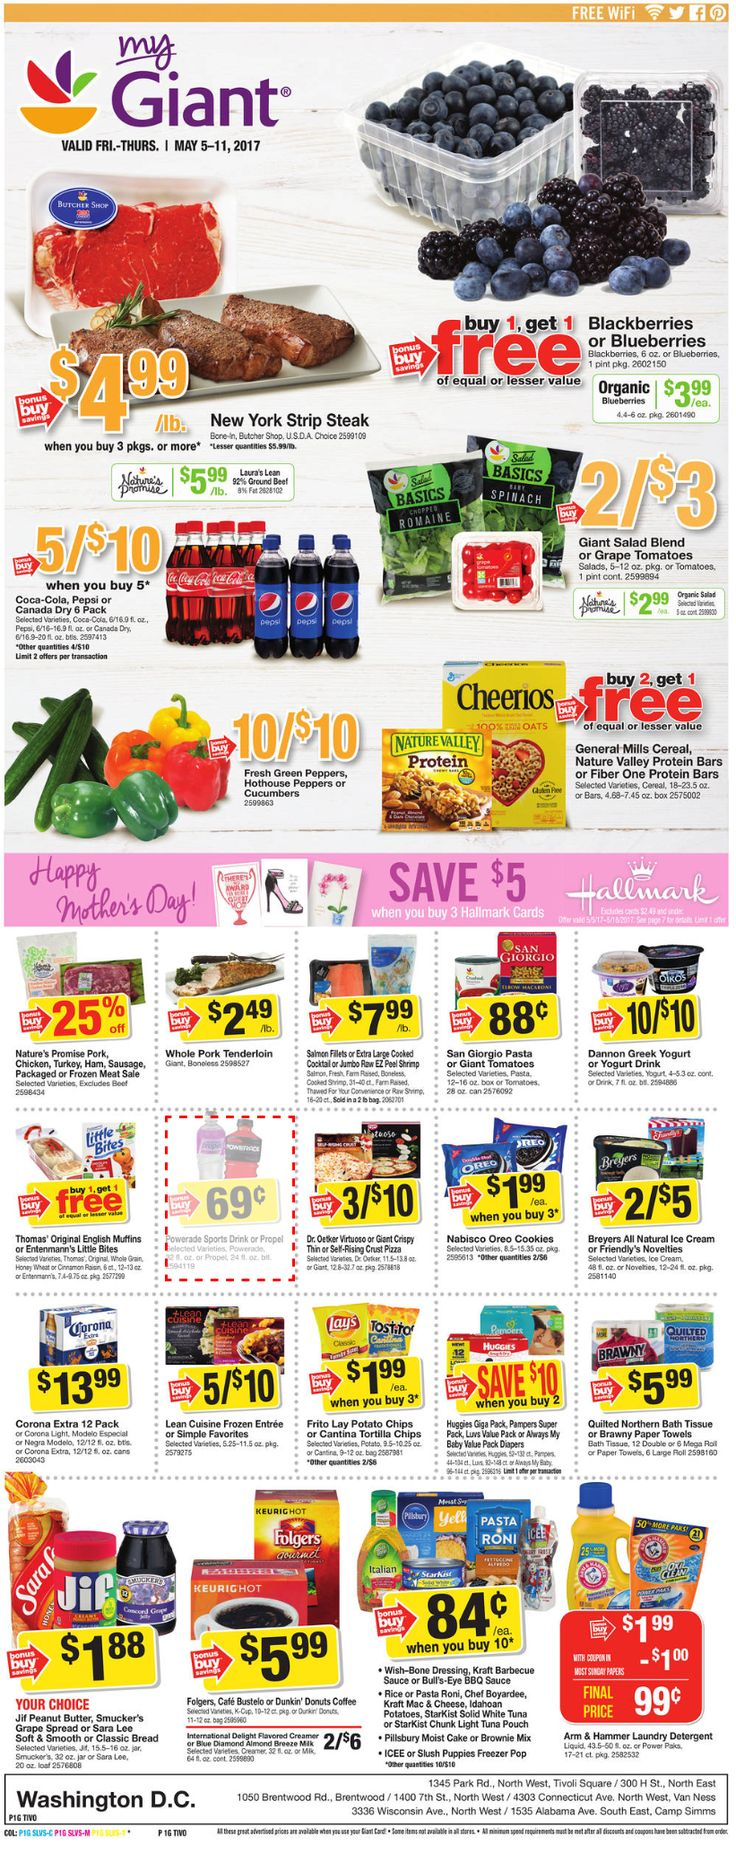 Giant Food Weekly Ad May 5 - 11, 2017 - http://www.olcatalog.com/grocery/giant-food-weekly-ad.html